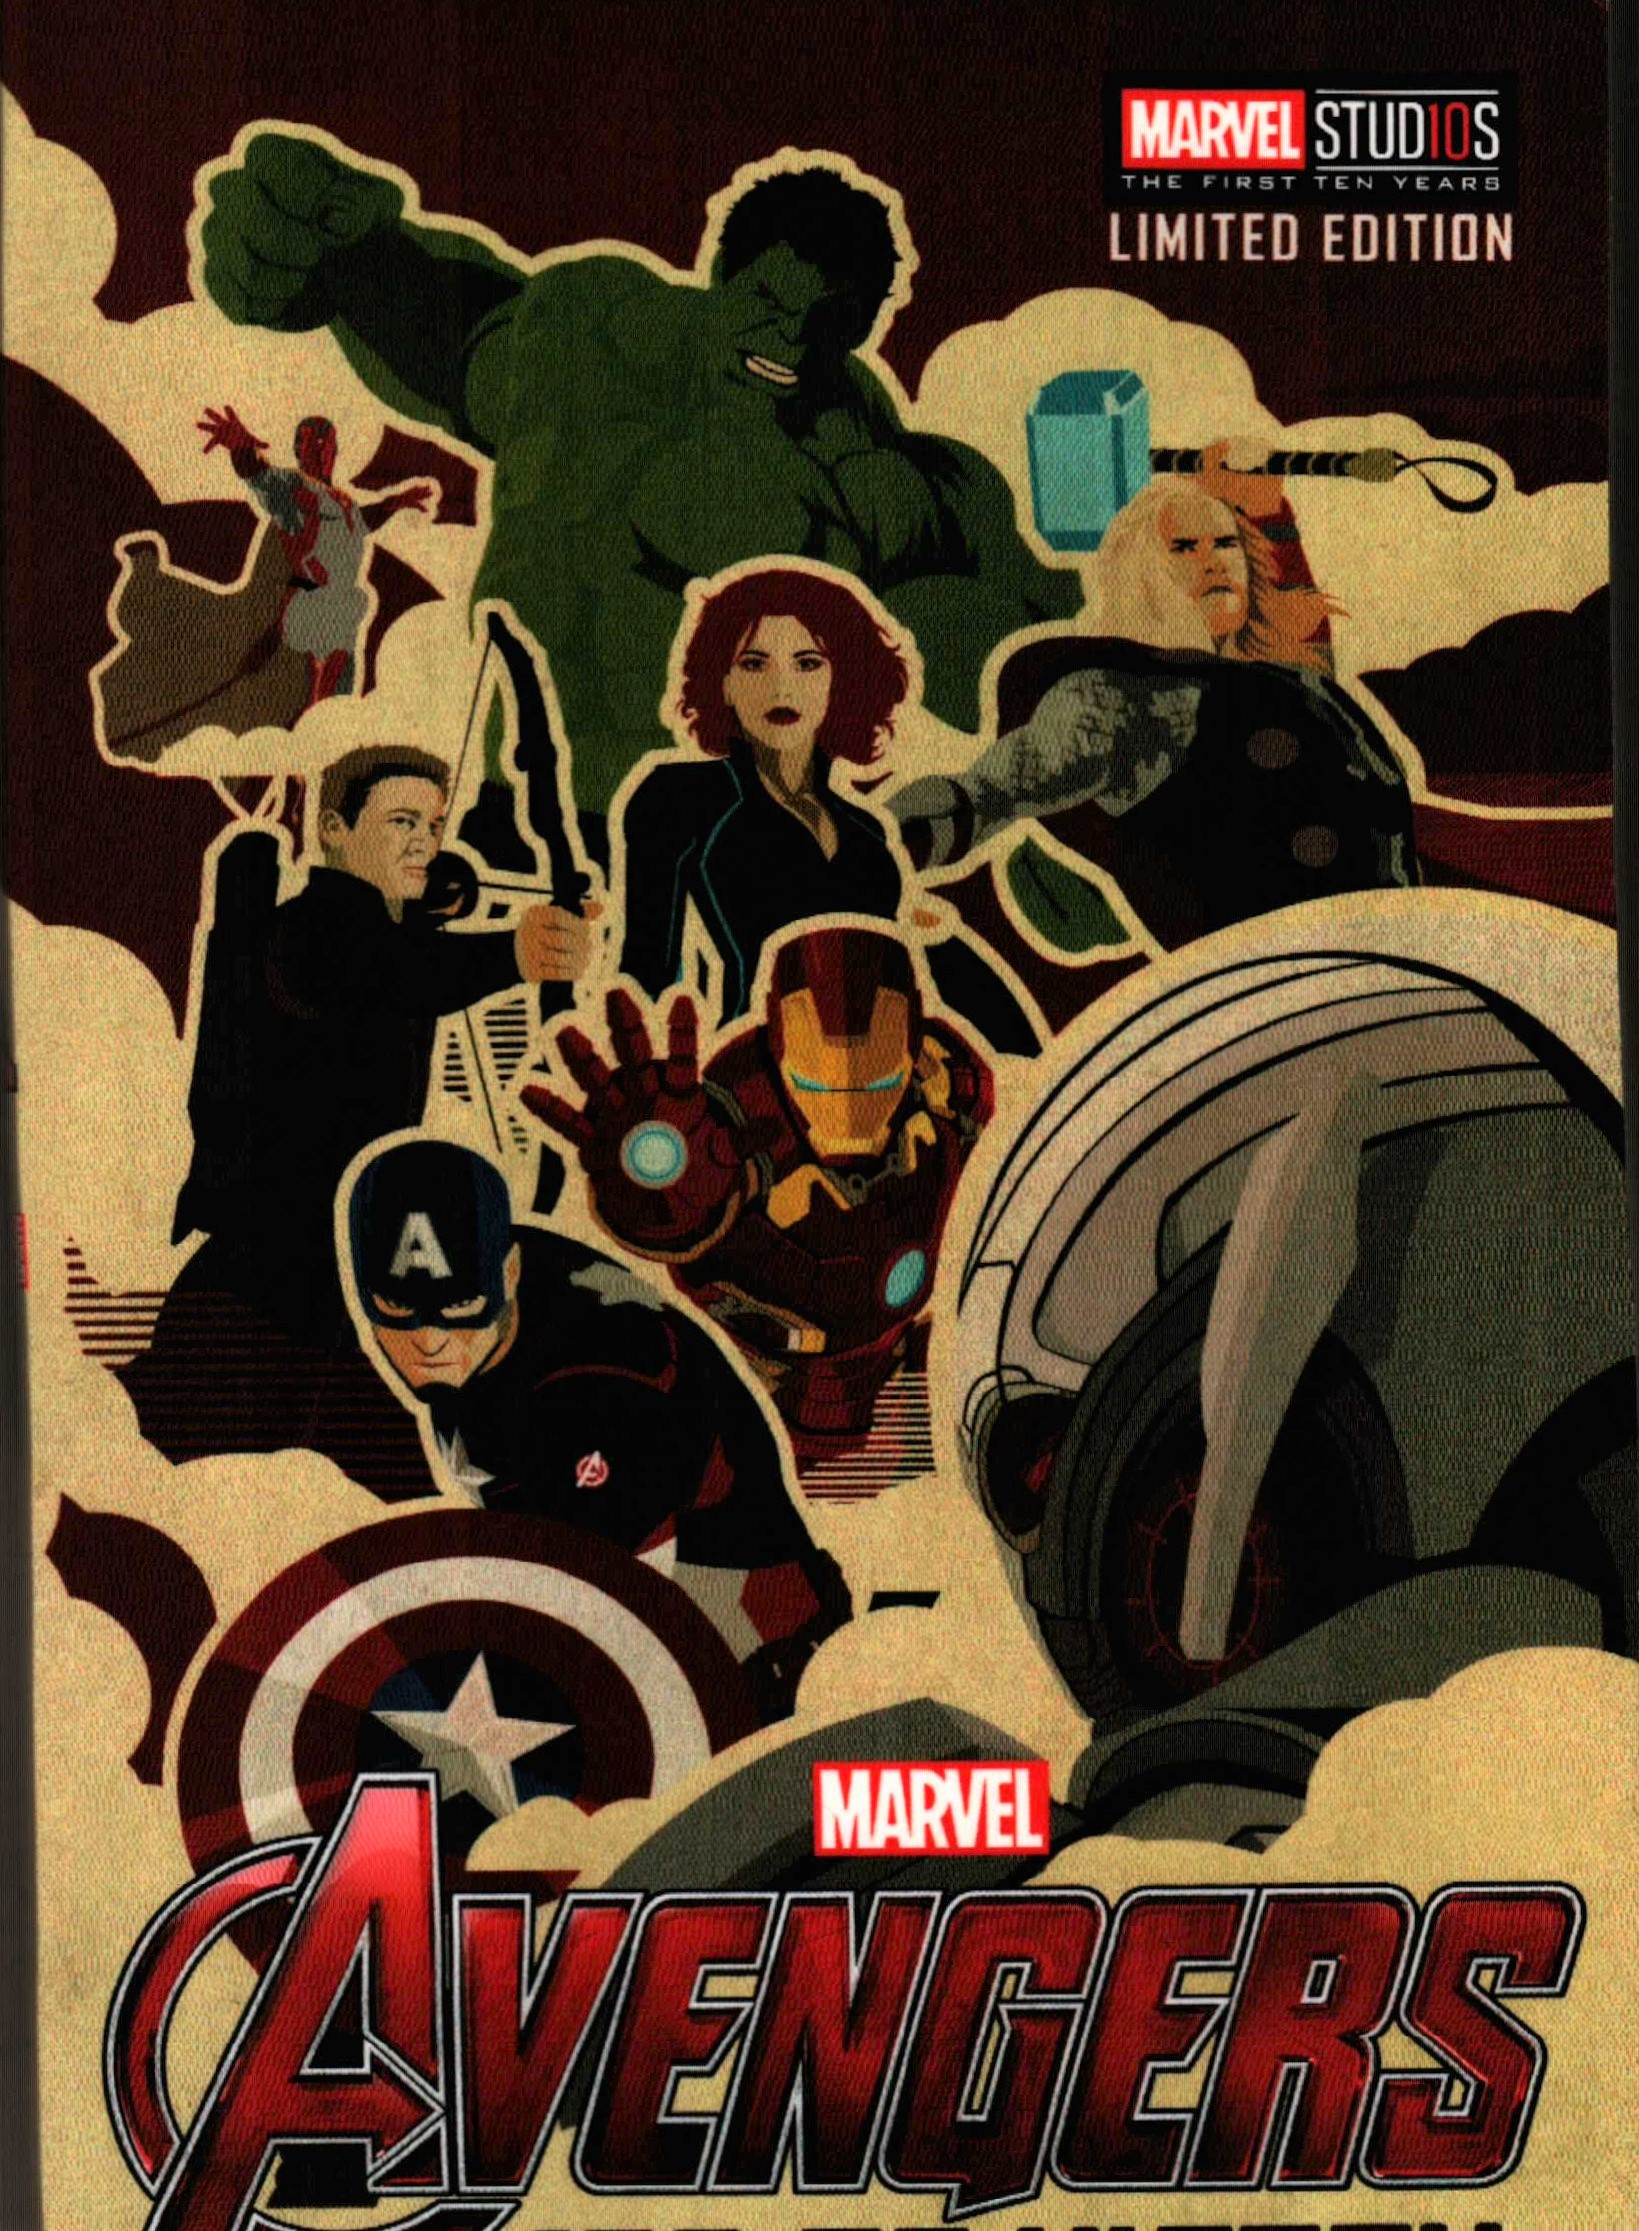 Marvel Avengers Limited Edition